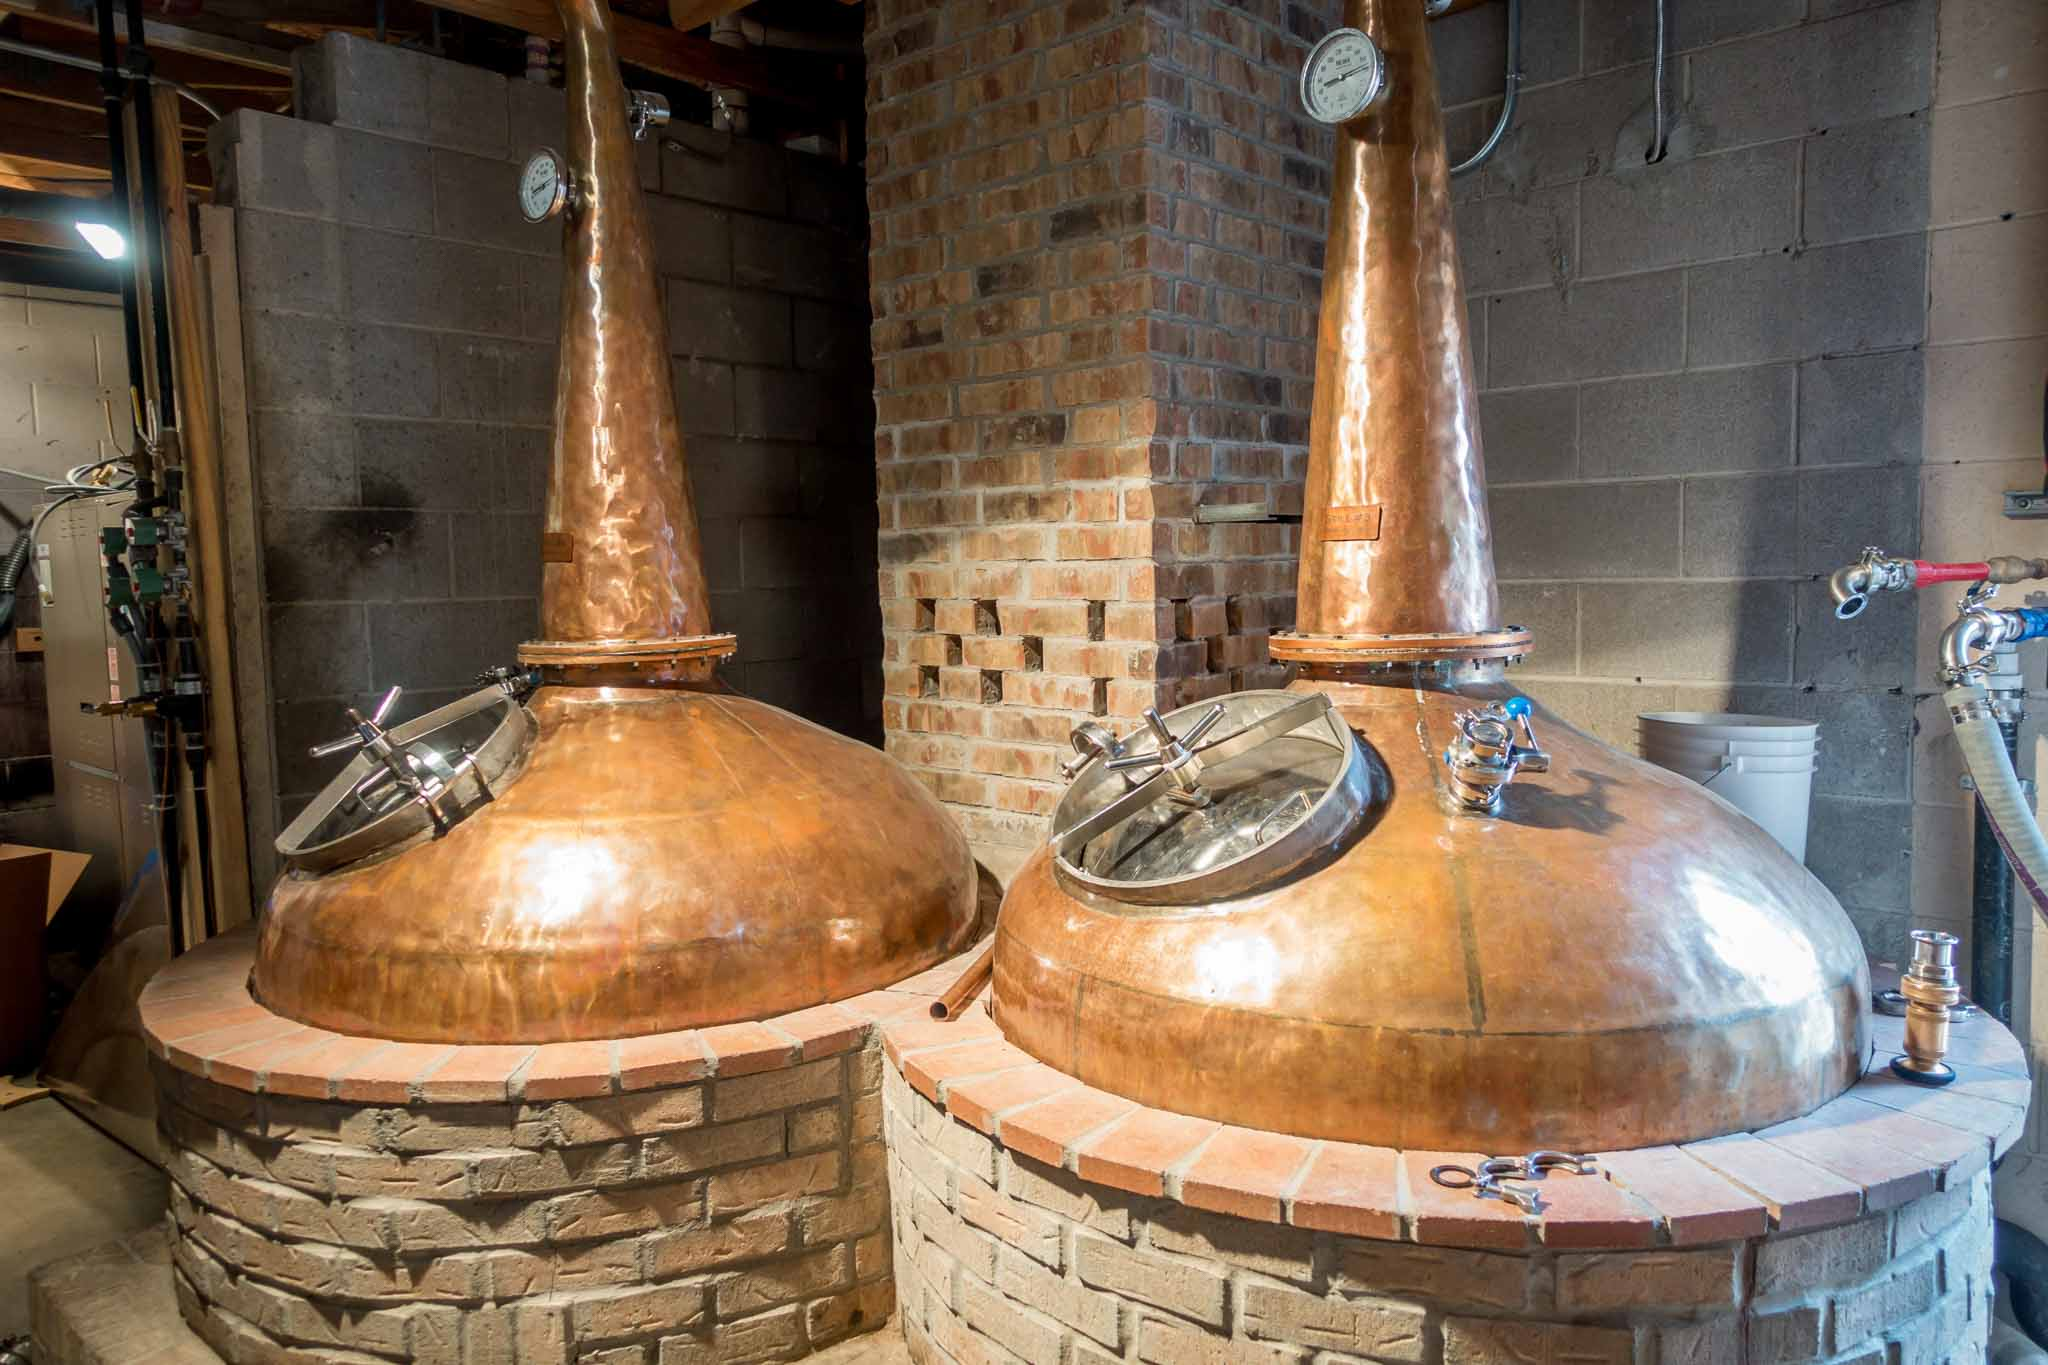 Stills at Balcones Distilling, one of the most well-respected Texas distilleries